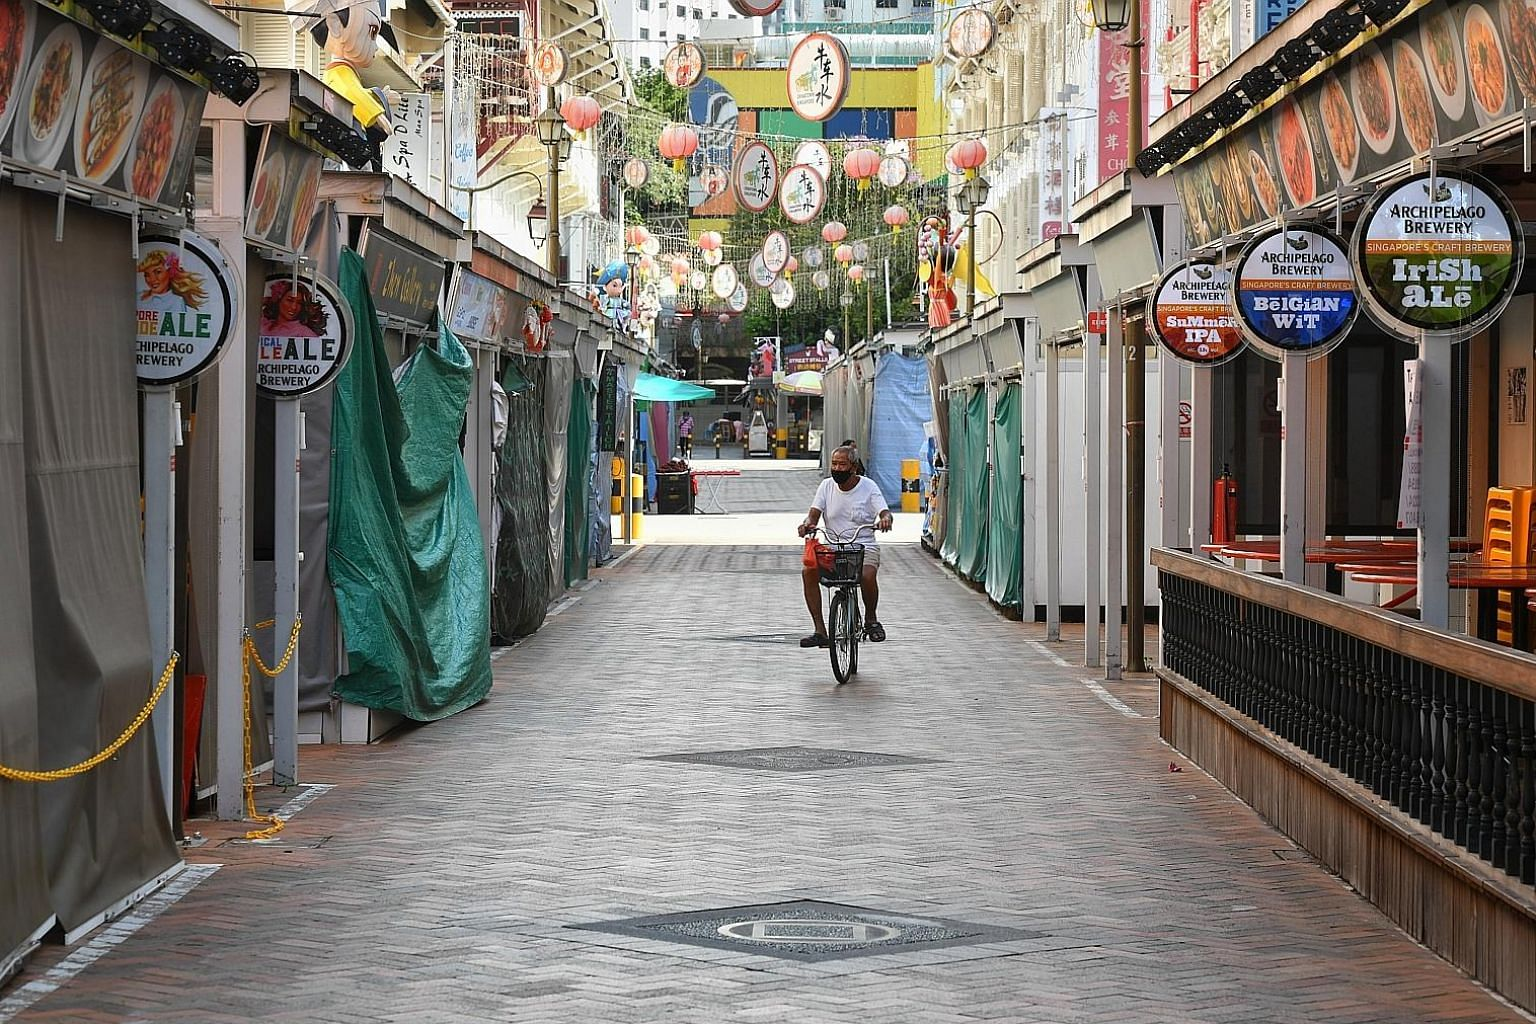 An almost-empty Terengganu Street in Chinatown on May 14. Many wish for a sharp, V-shaped recovery in the global economy after the steep decline in the first quarter. However, this is possible only if there is an effective treatment, or the Covid-19